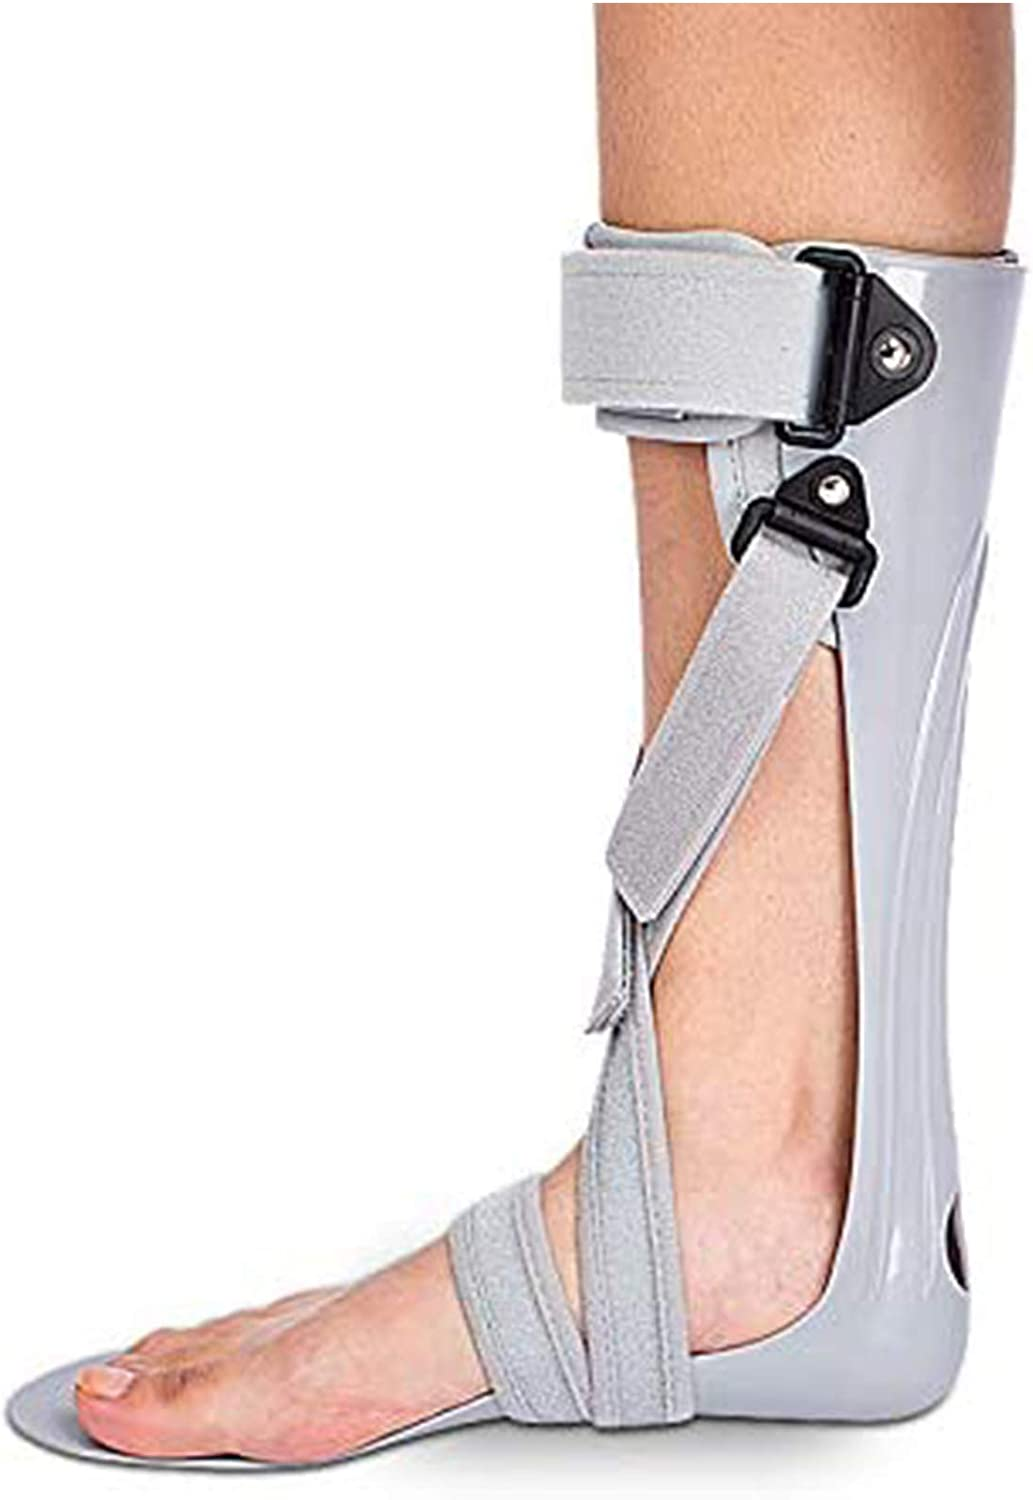 Cheap sale ZYQDRZ Foot Drop Orthosis Can Joint Ankle Shoes Houston Mall Fi Wear